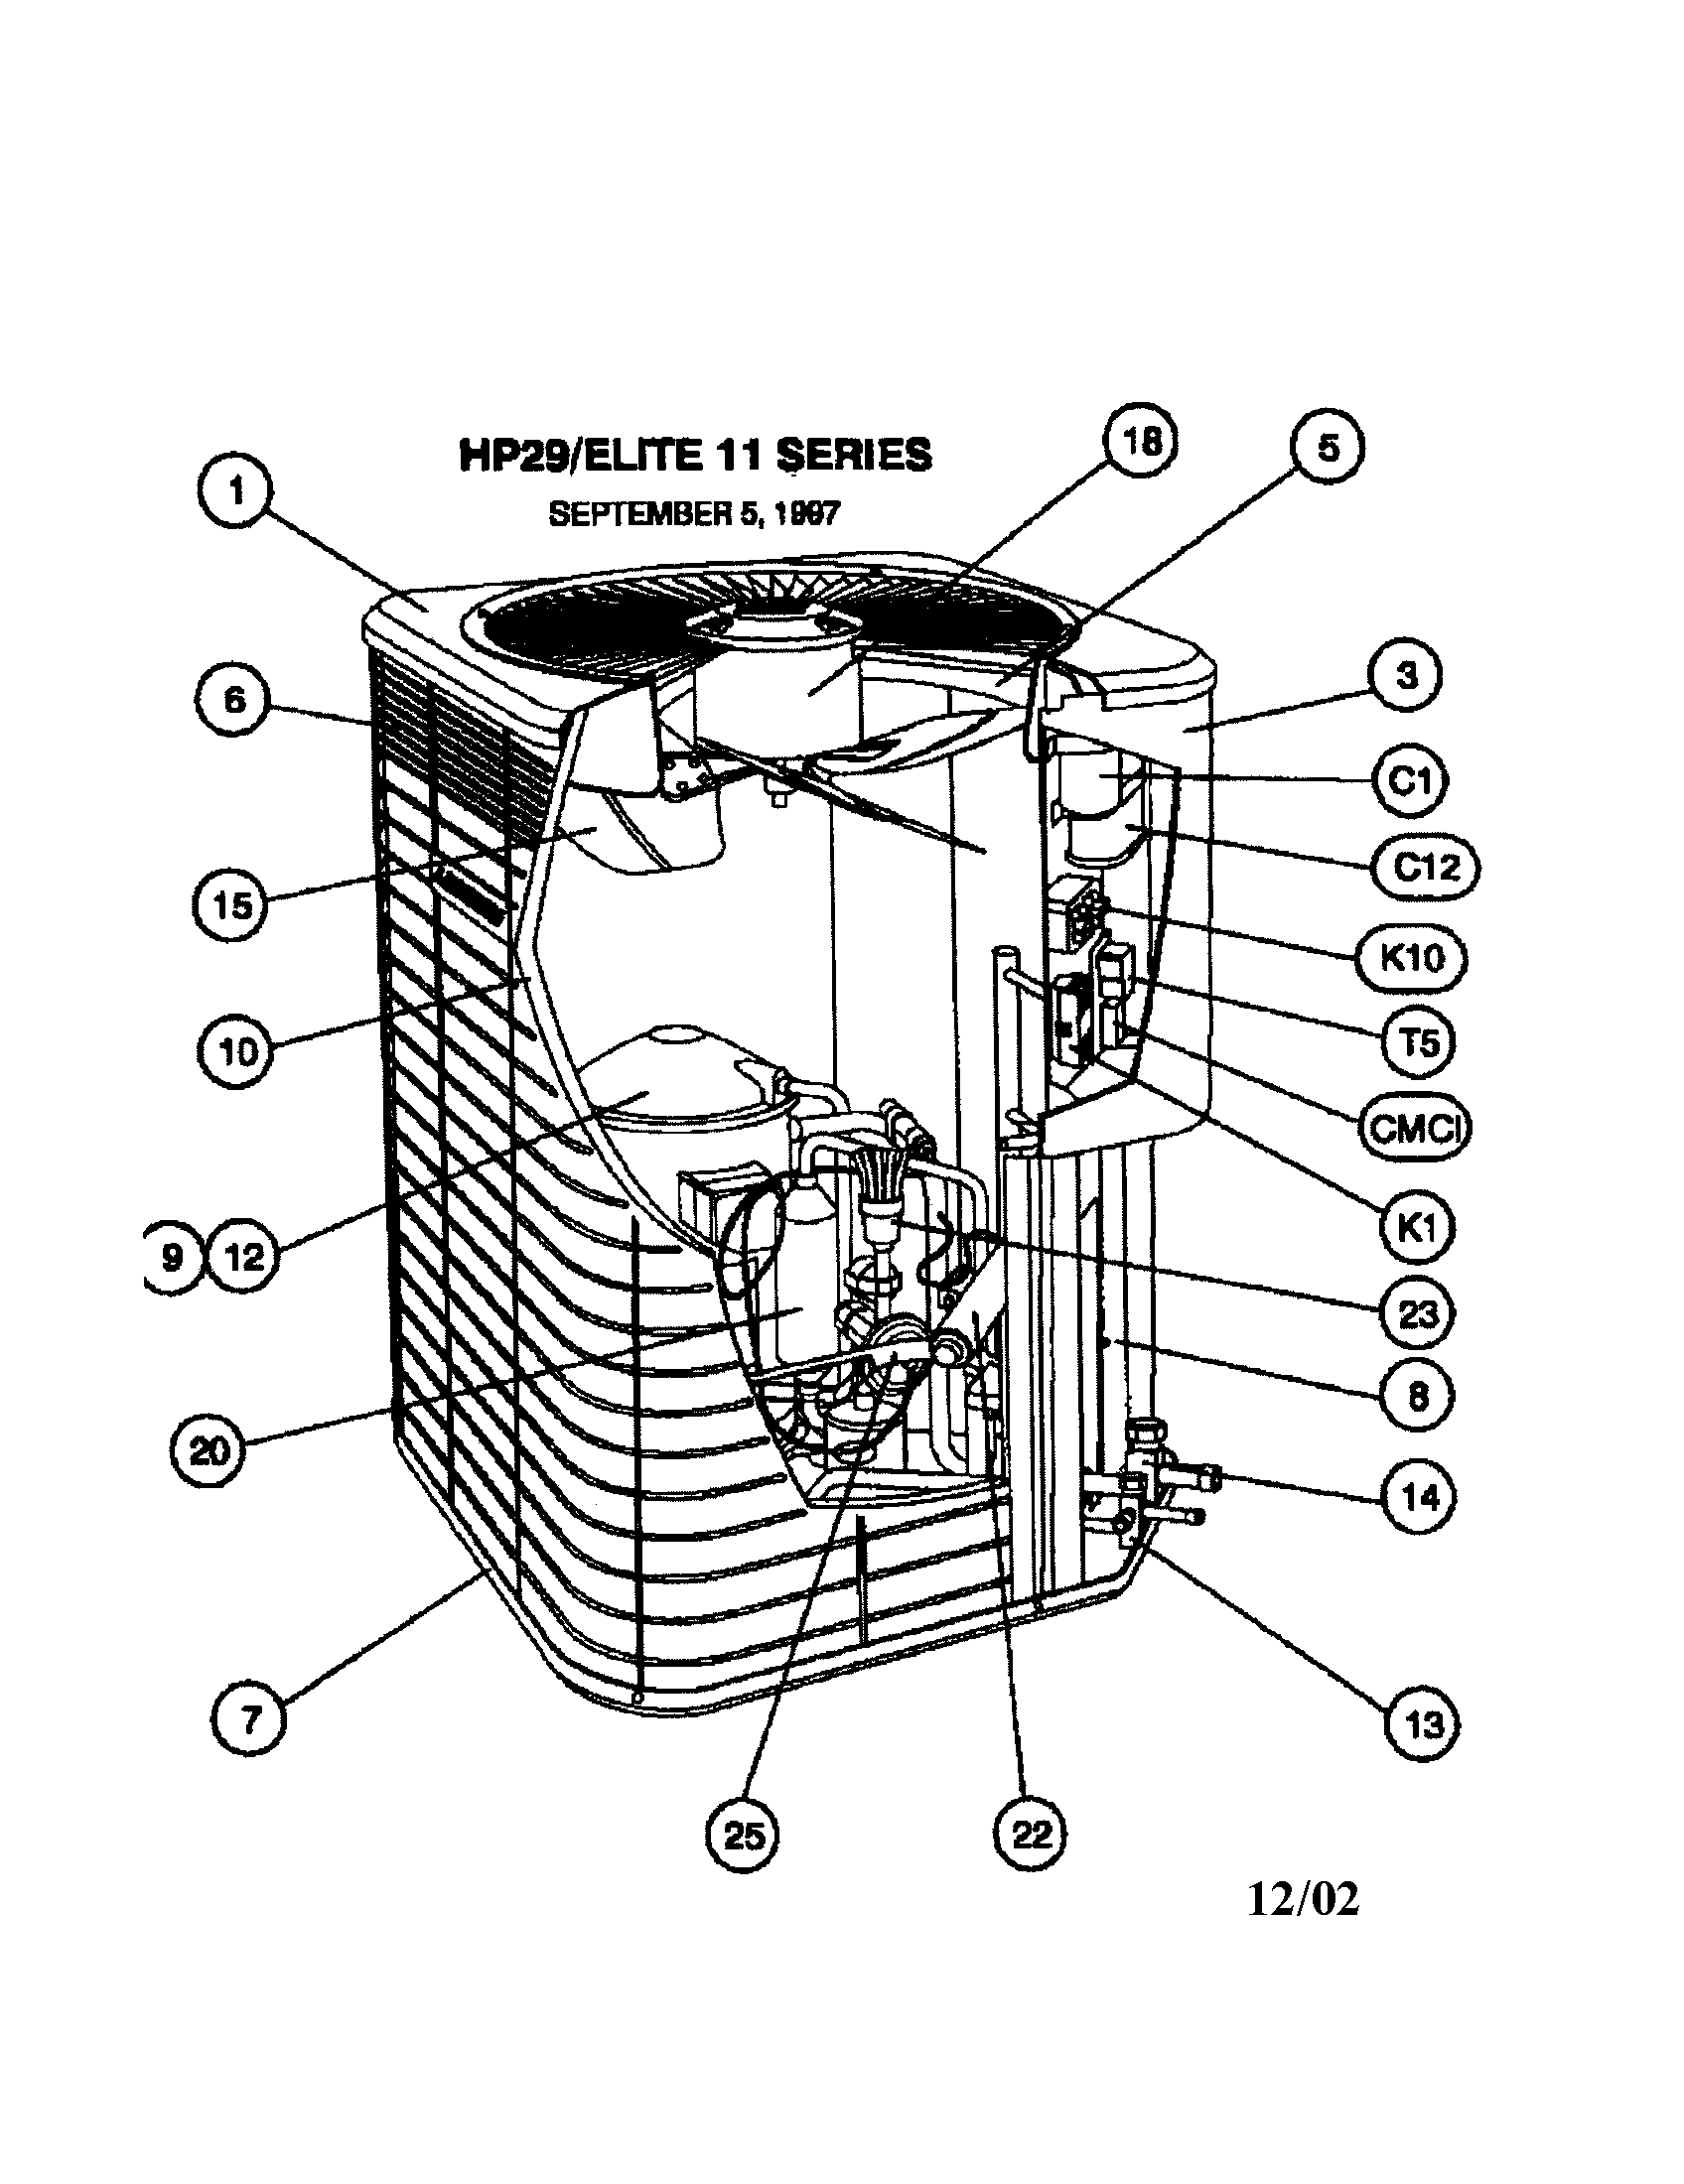 Lennox Central Air Conditioner Hs23 461 2p Wiring Diagram